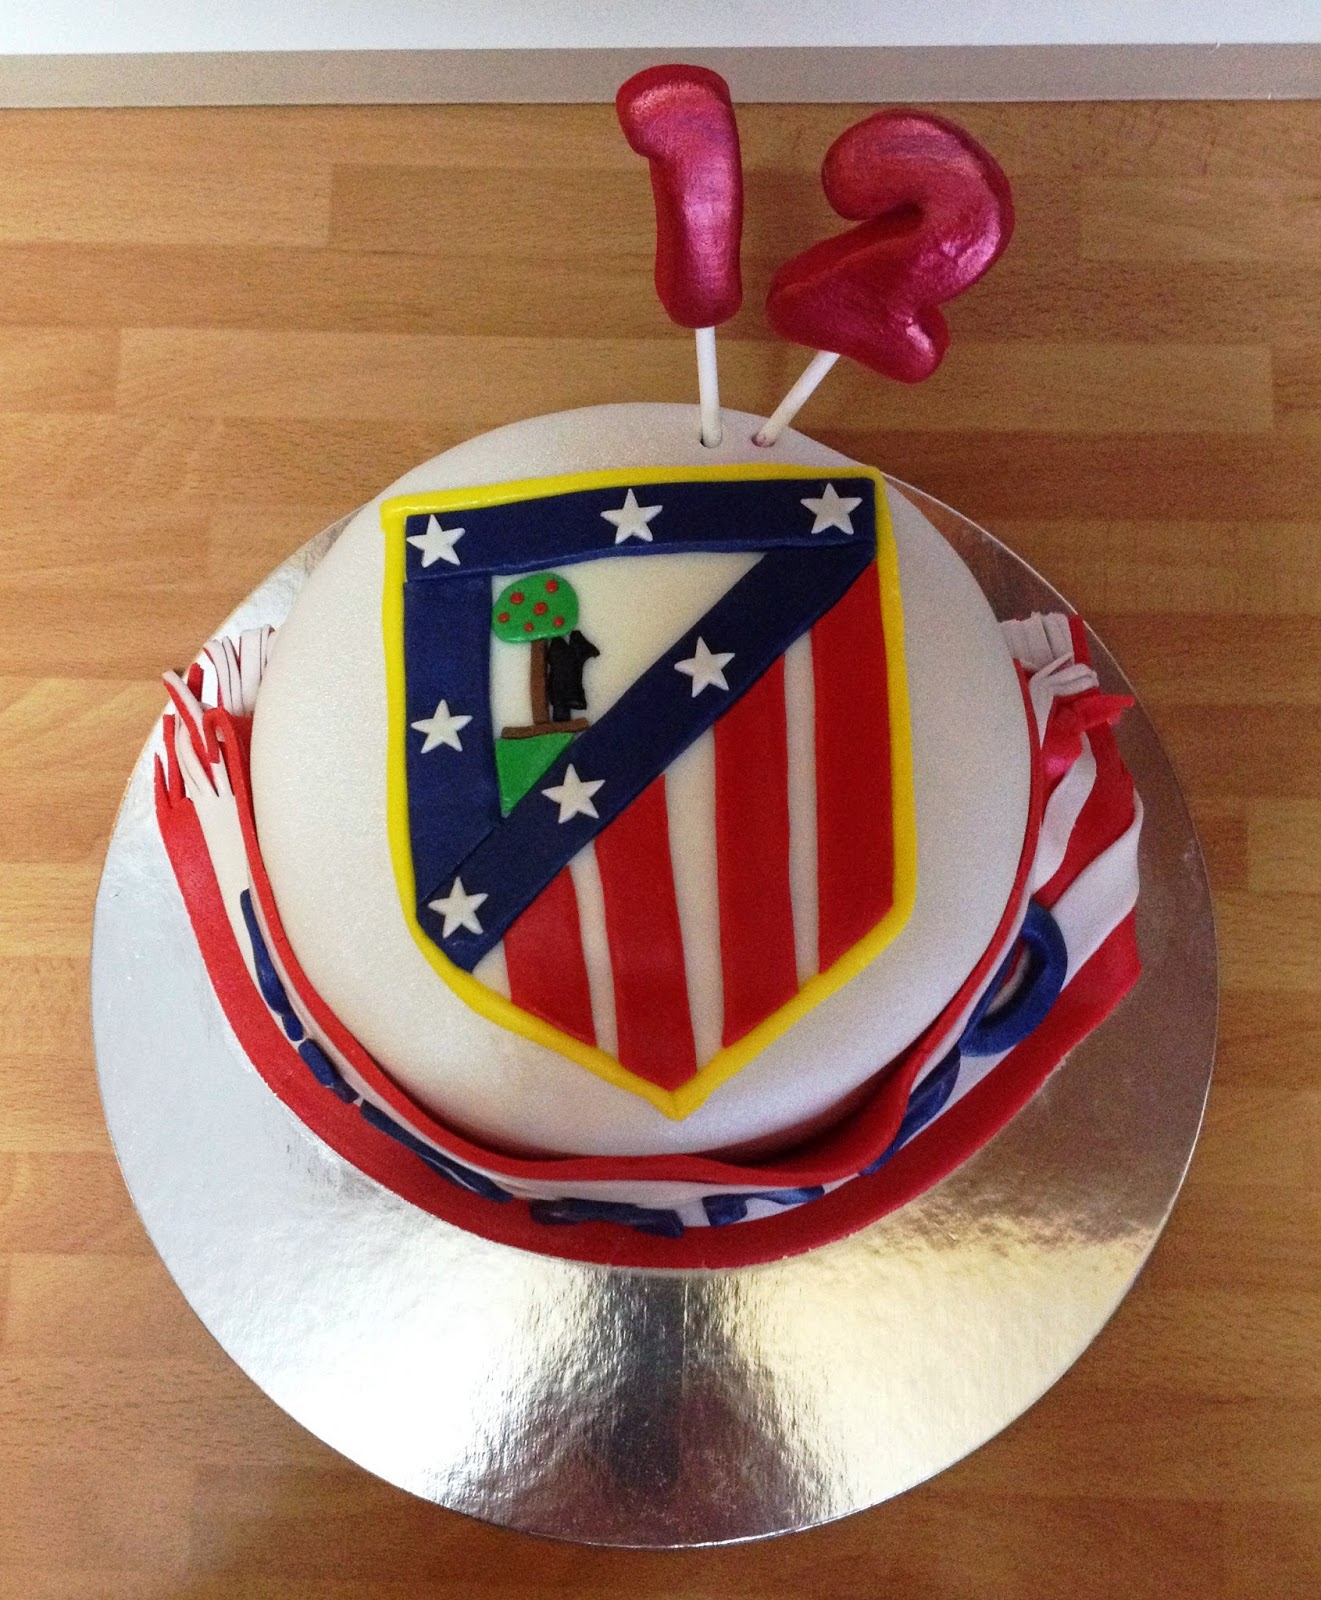 TARTA DECORADA ATLETI; TARTA DECORADA ATLETICO DE MADRID; TARTA FONDANT ATLETICO DE MADRID